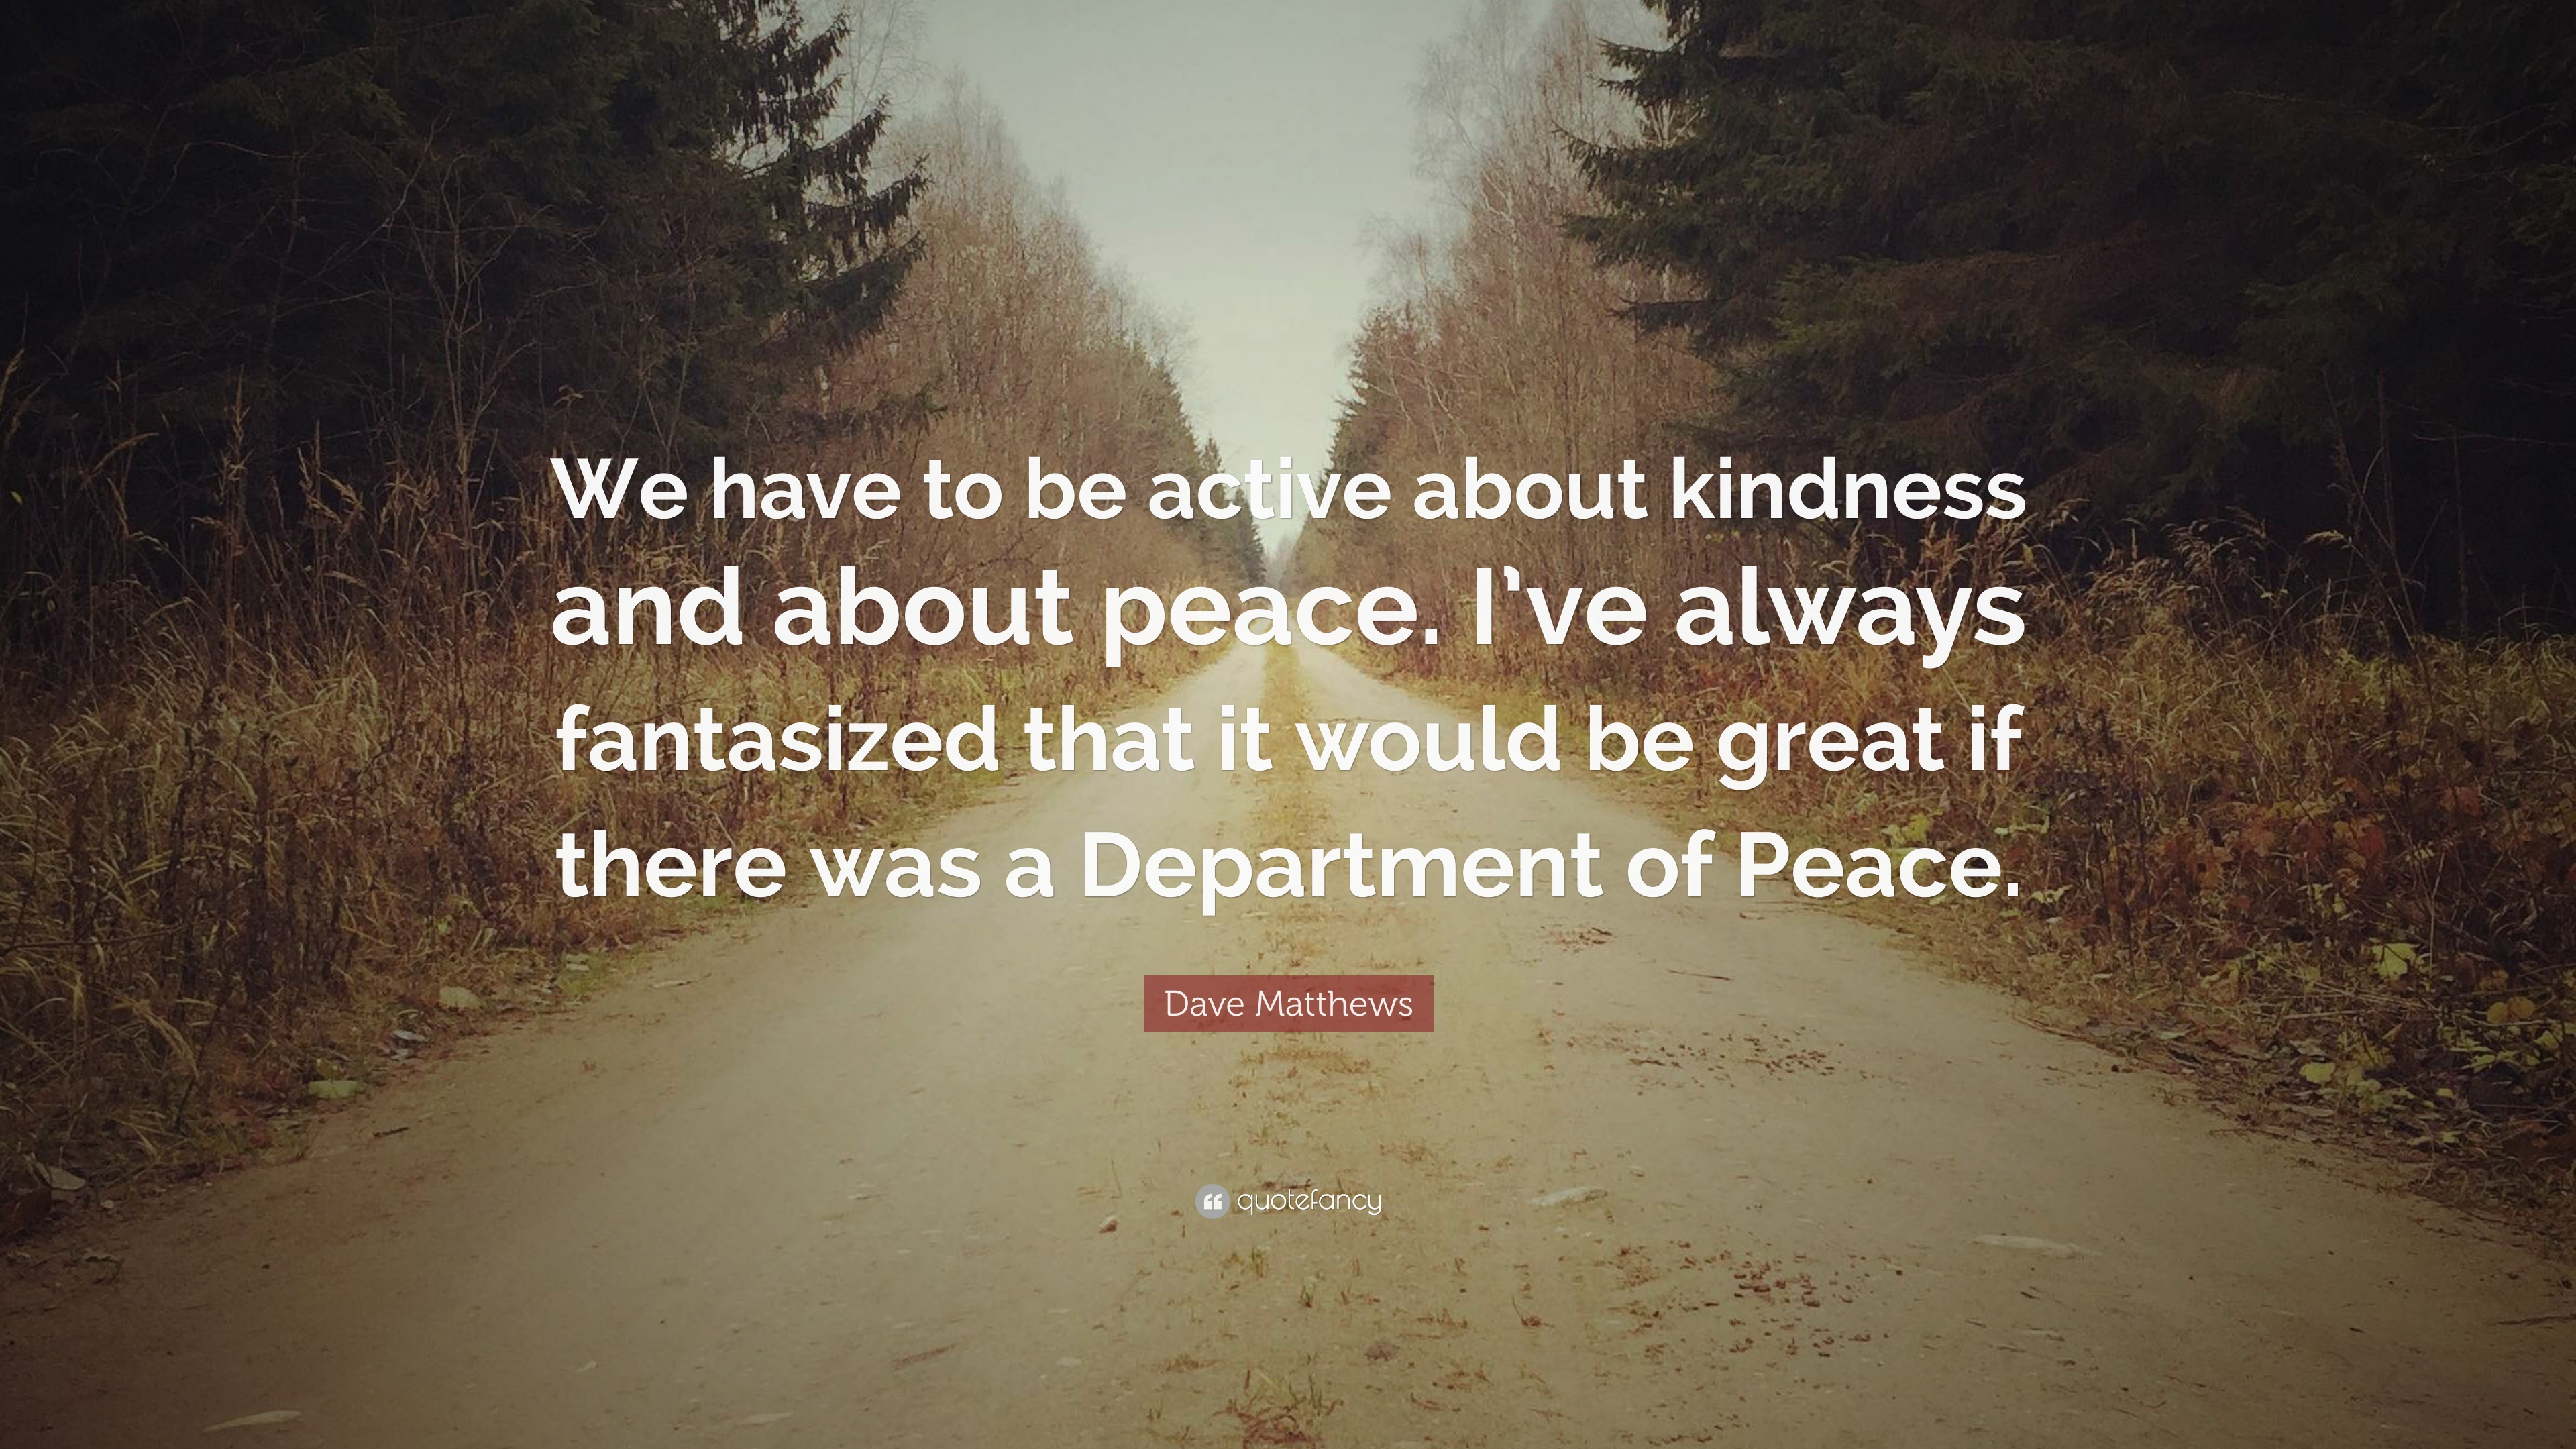 """Dave Matthews Quotes Dave Matthews Quote: """"We have to be active about kindness and  Dave Matthews Quotes"""